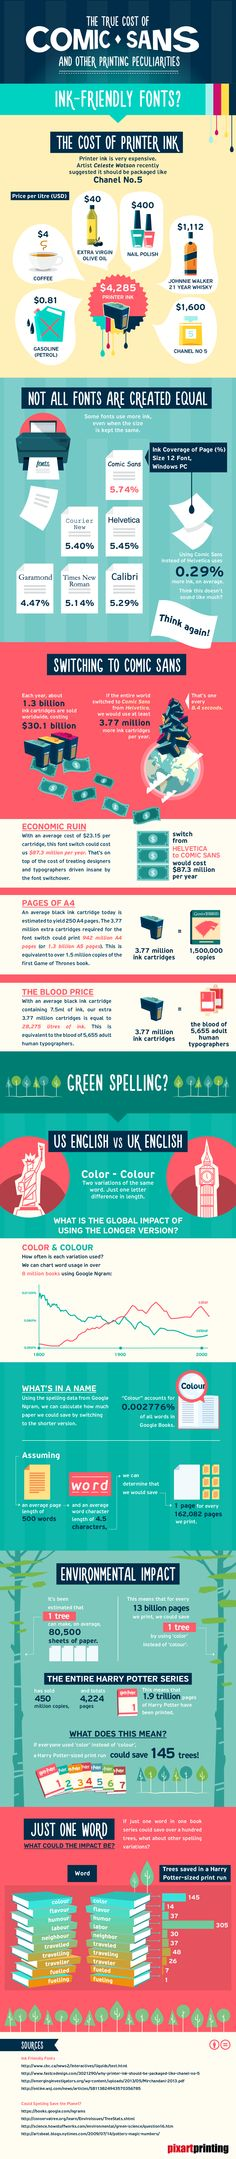 Infographic: How Printing Comic Sans And UK English Would Cost More - DesignTAXI.com.